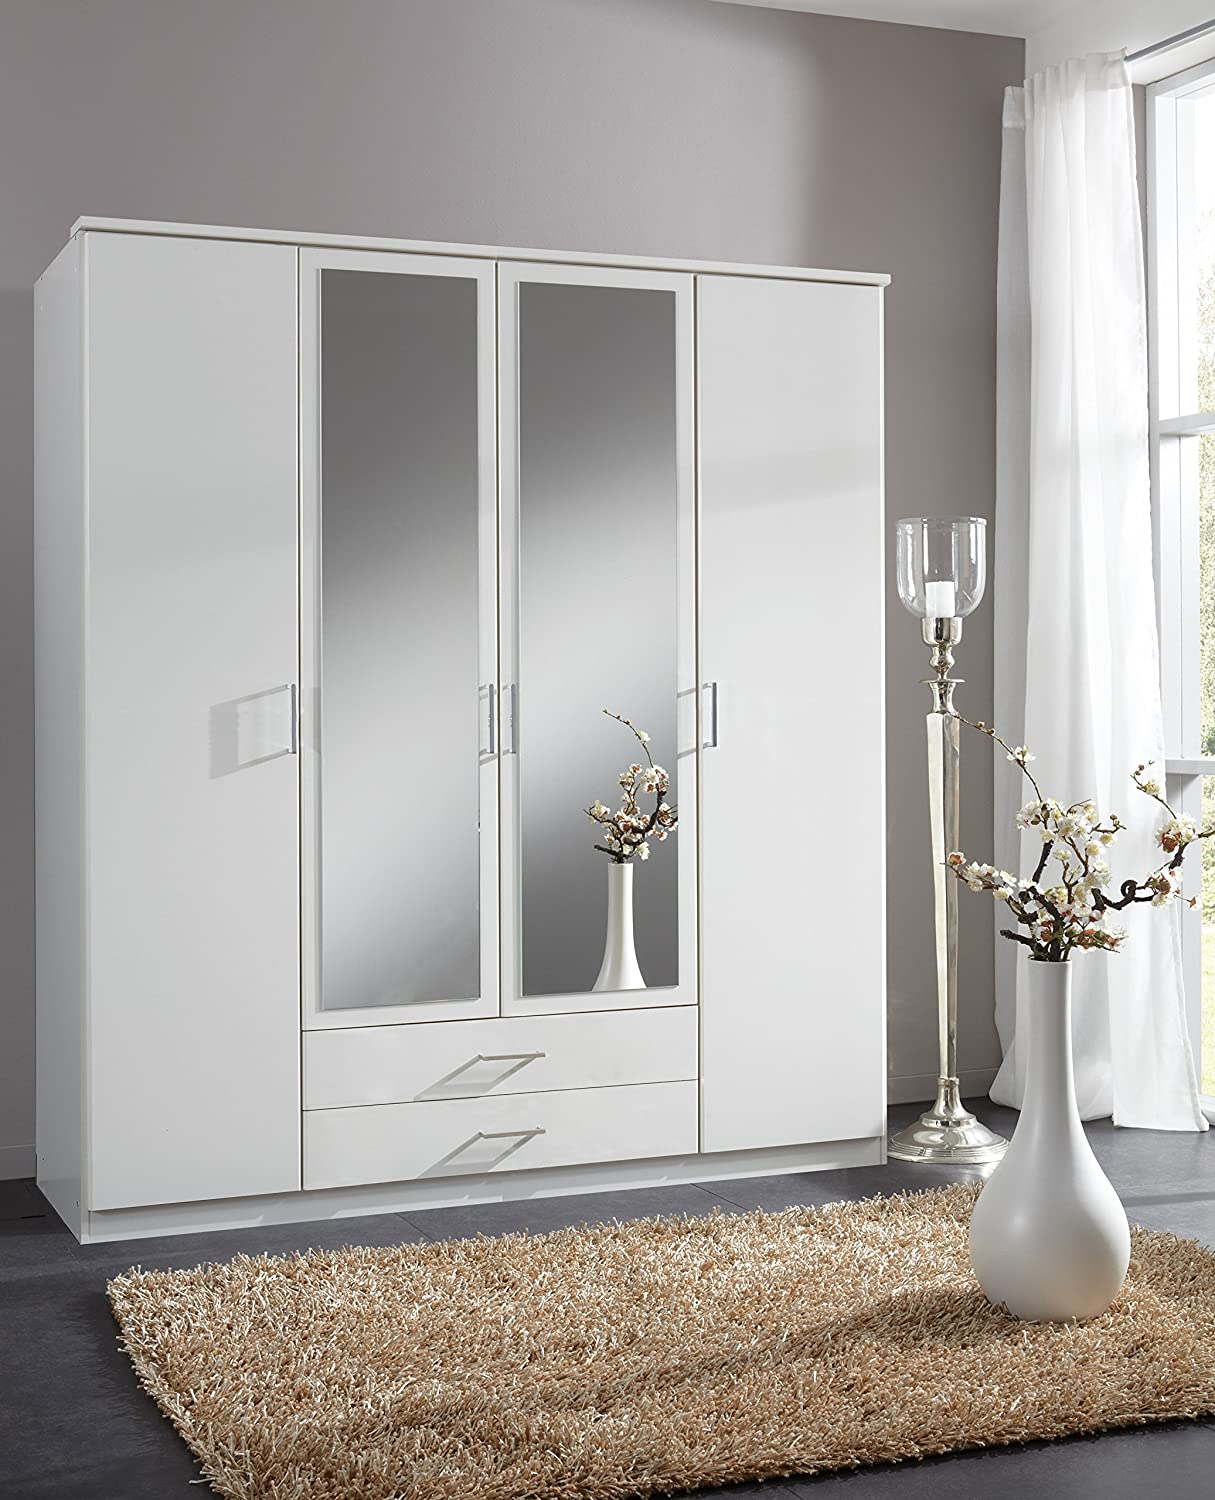 target wardrobes fascinating storage design inspiring and marvelous bedroom white enigma cabinets wardrobe also cabinet ion